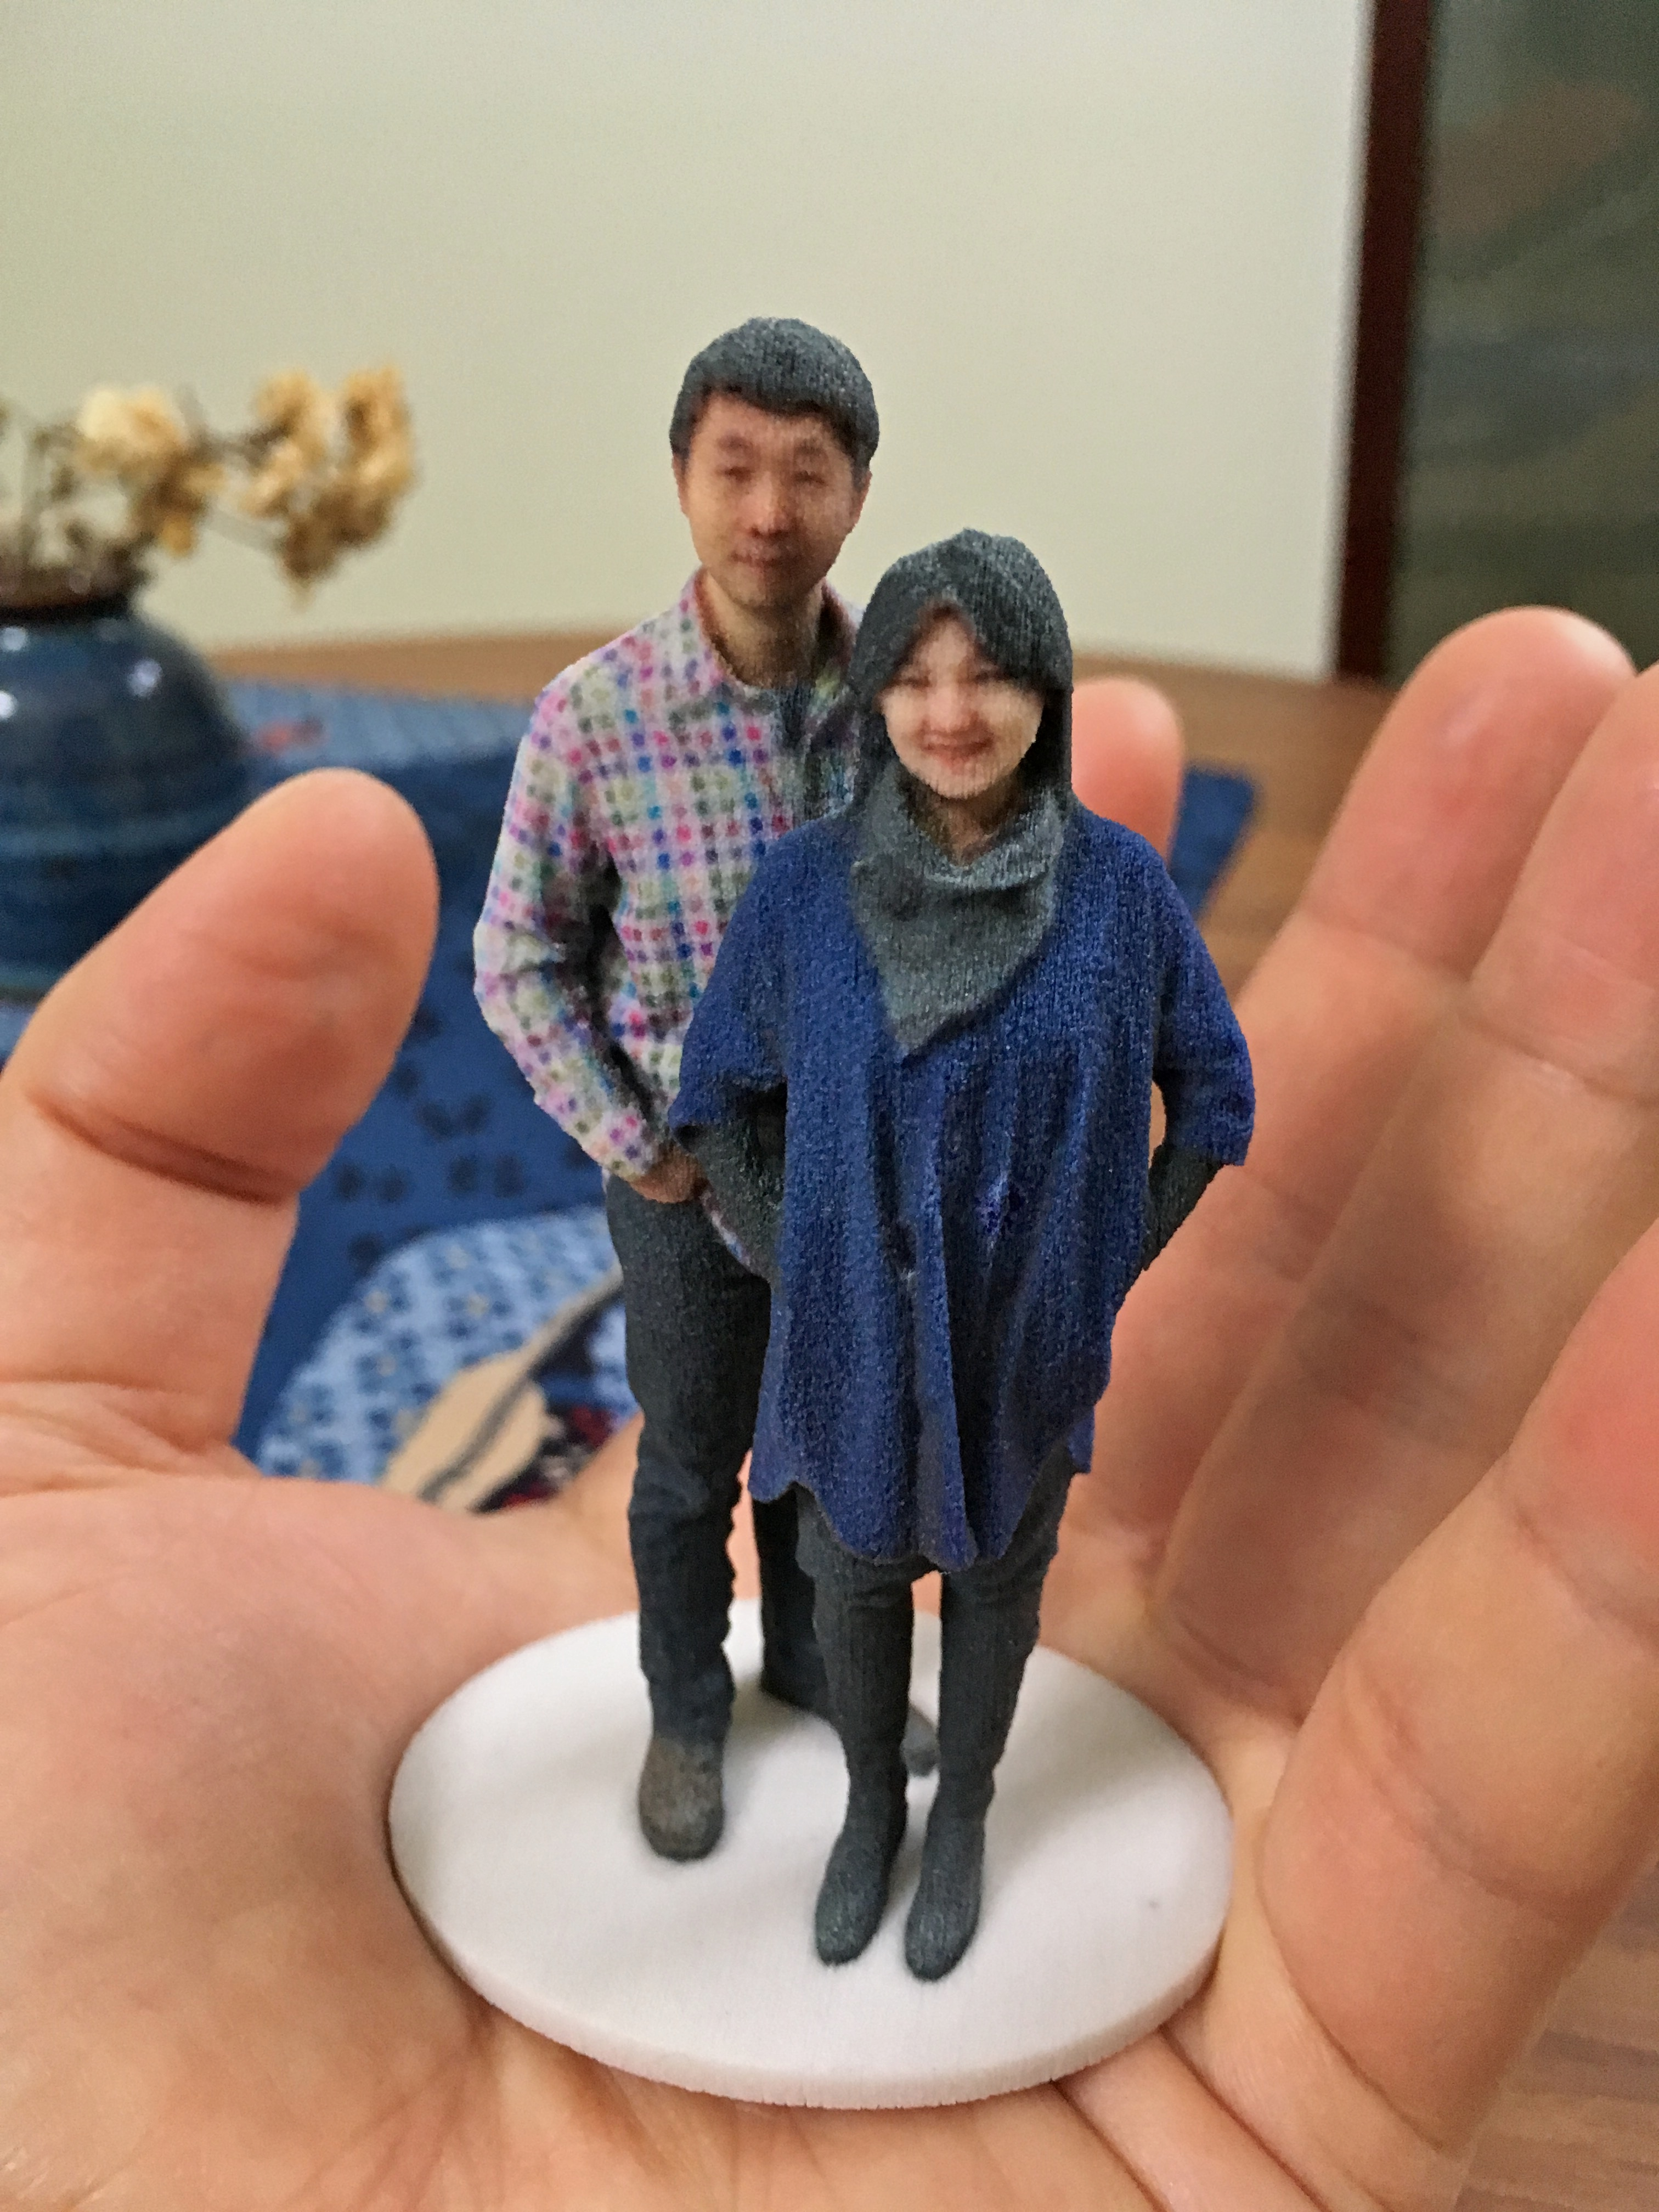 3d Printing Wikipedia Https Docsgooglecom Fileiddqs3sg60hj4h624vb A Selfie In 120 Scale Printed By Shapeways Using Gypsum Based